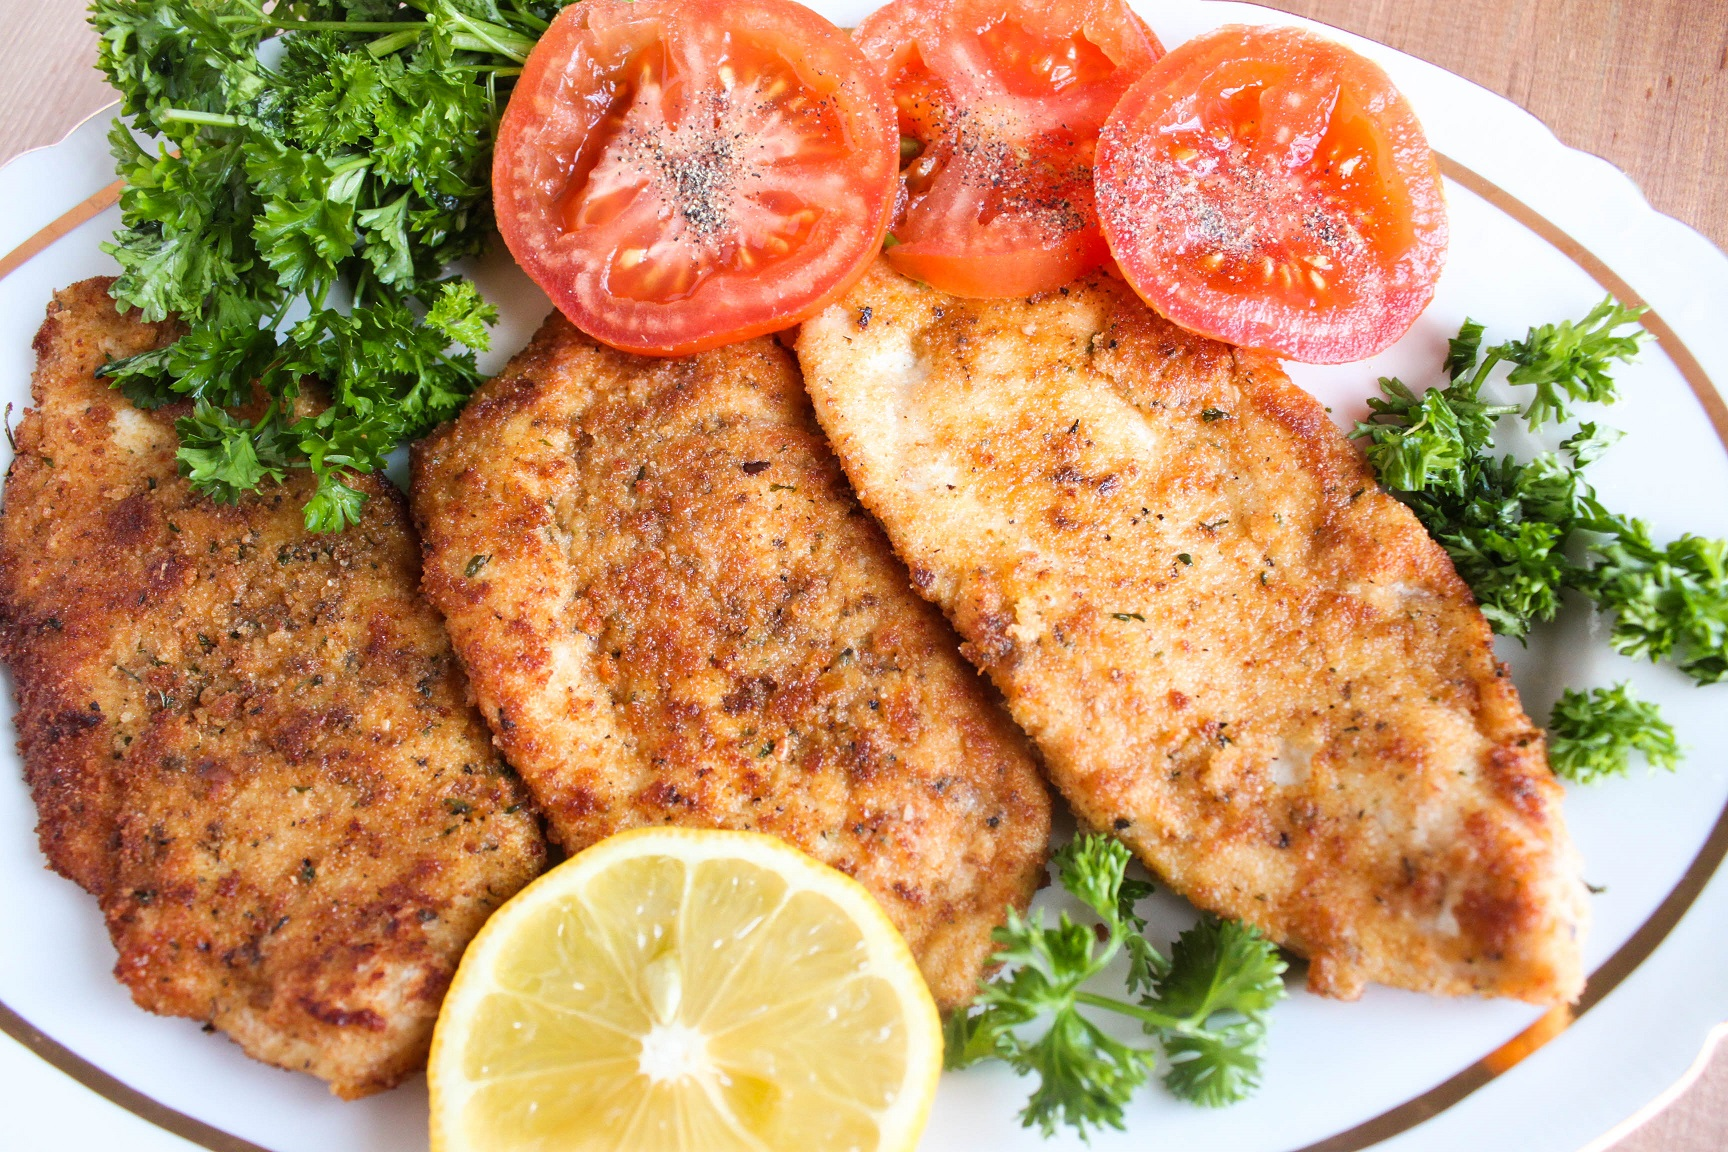 Juicy and  flavorful Chicken chops - tasty and easy to make!